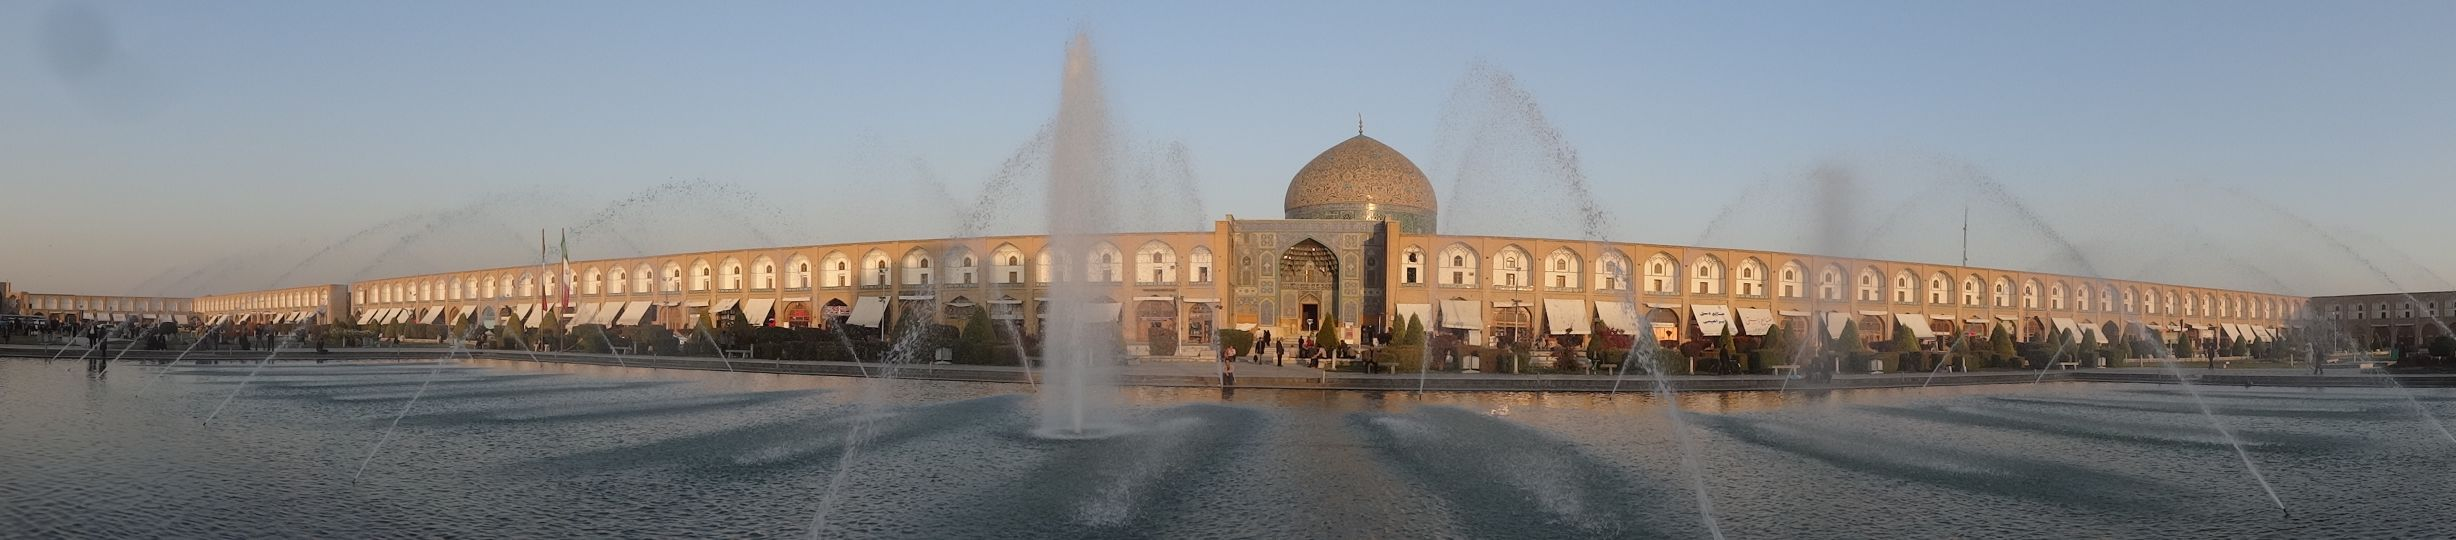 Imam Square fountain in Esfehan